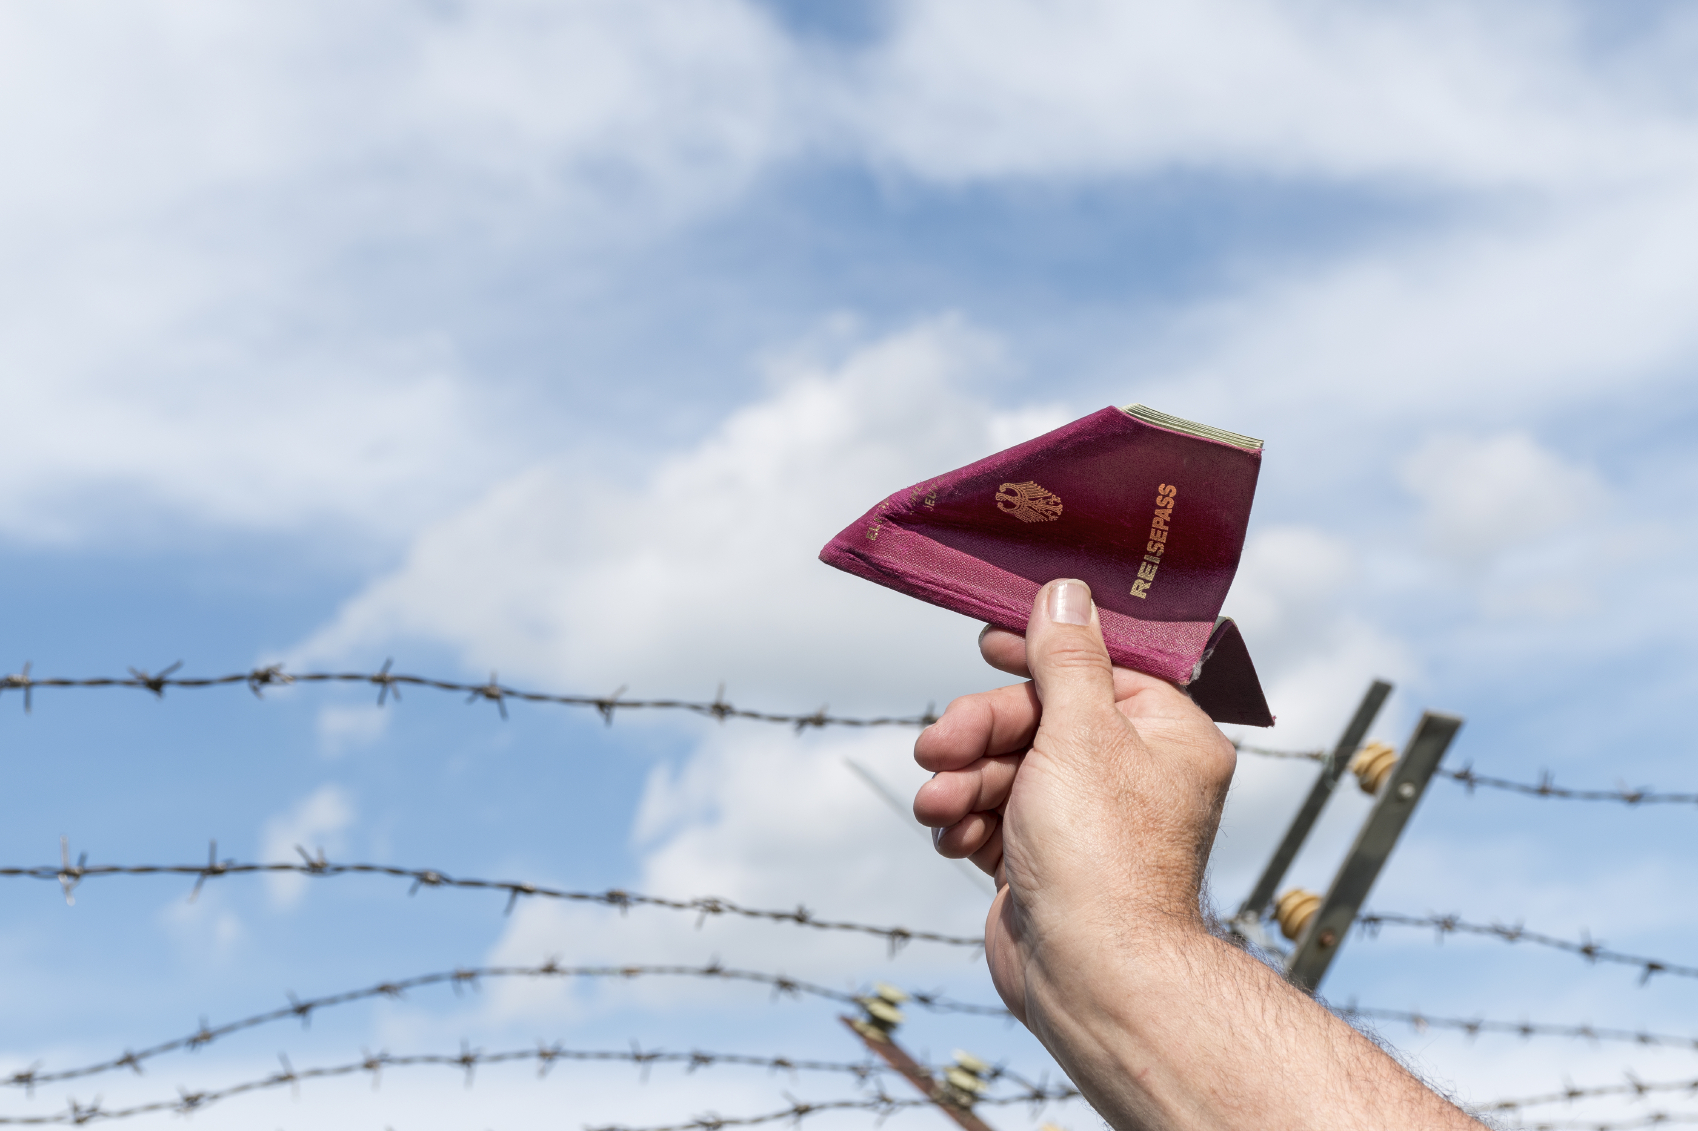 man's hand holding a German passport as a paper airplane over a barbed wire fence against the blue sky, copy space